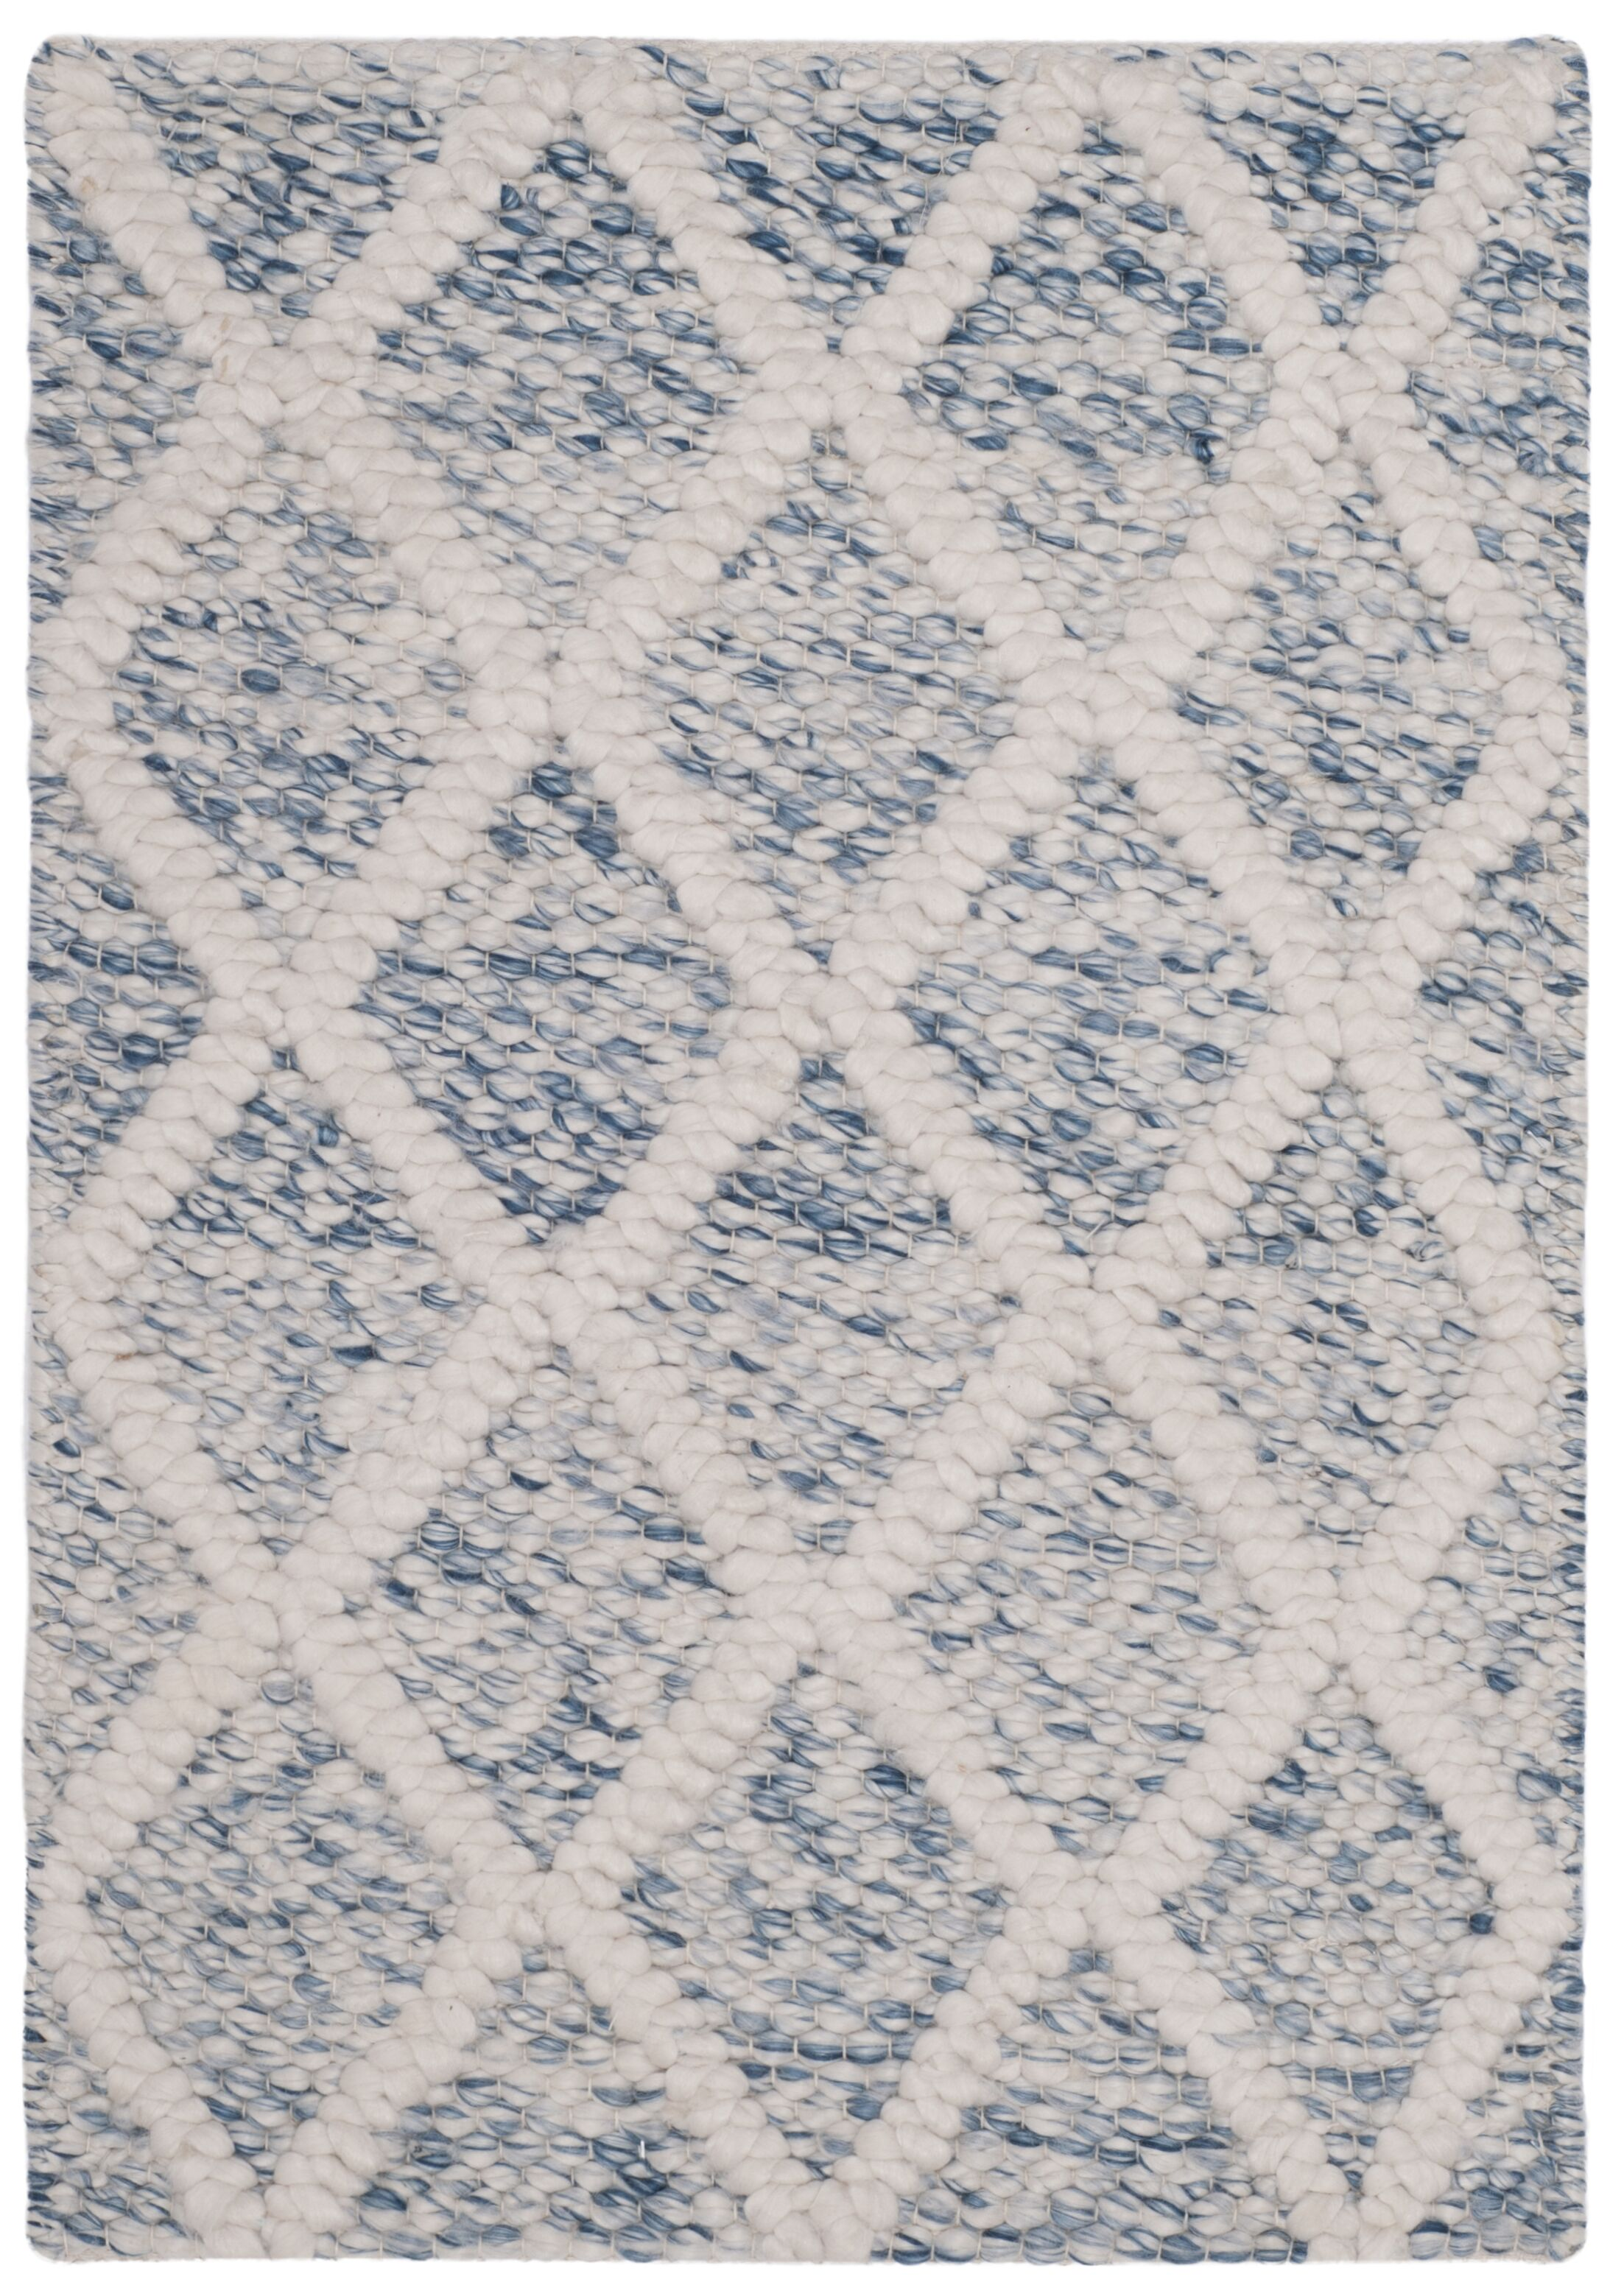 Billie Hand-Tufted Ivory/Blue Area Rug Rug Size: Rectangle 5' x 8'